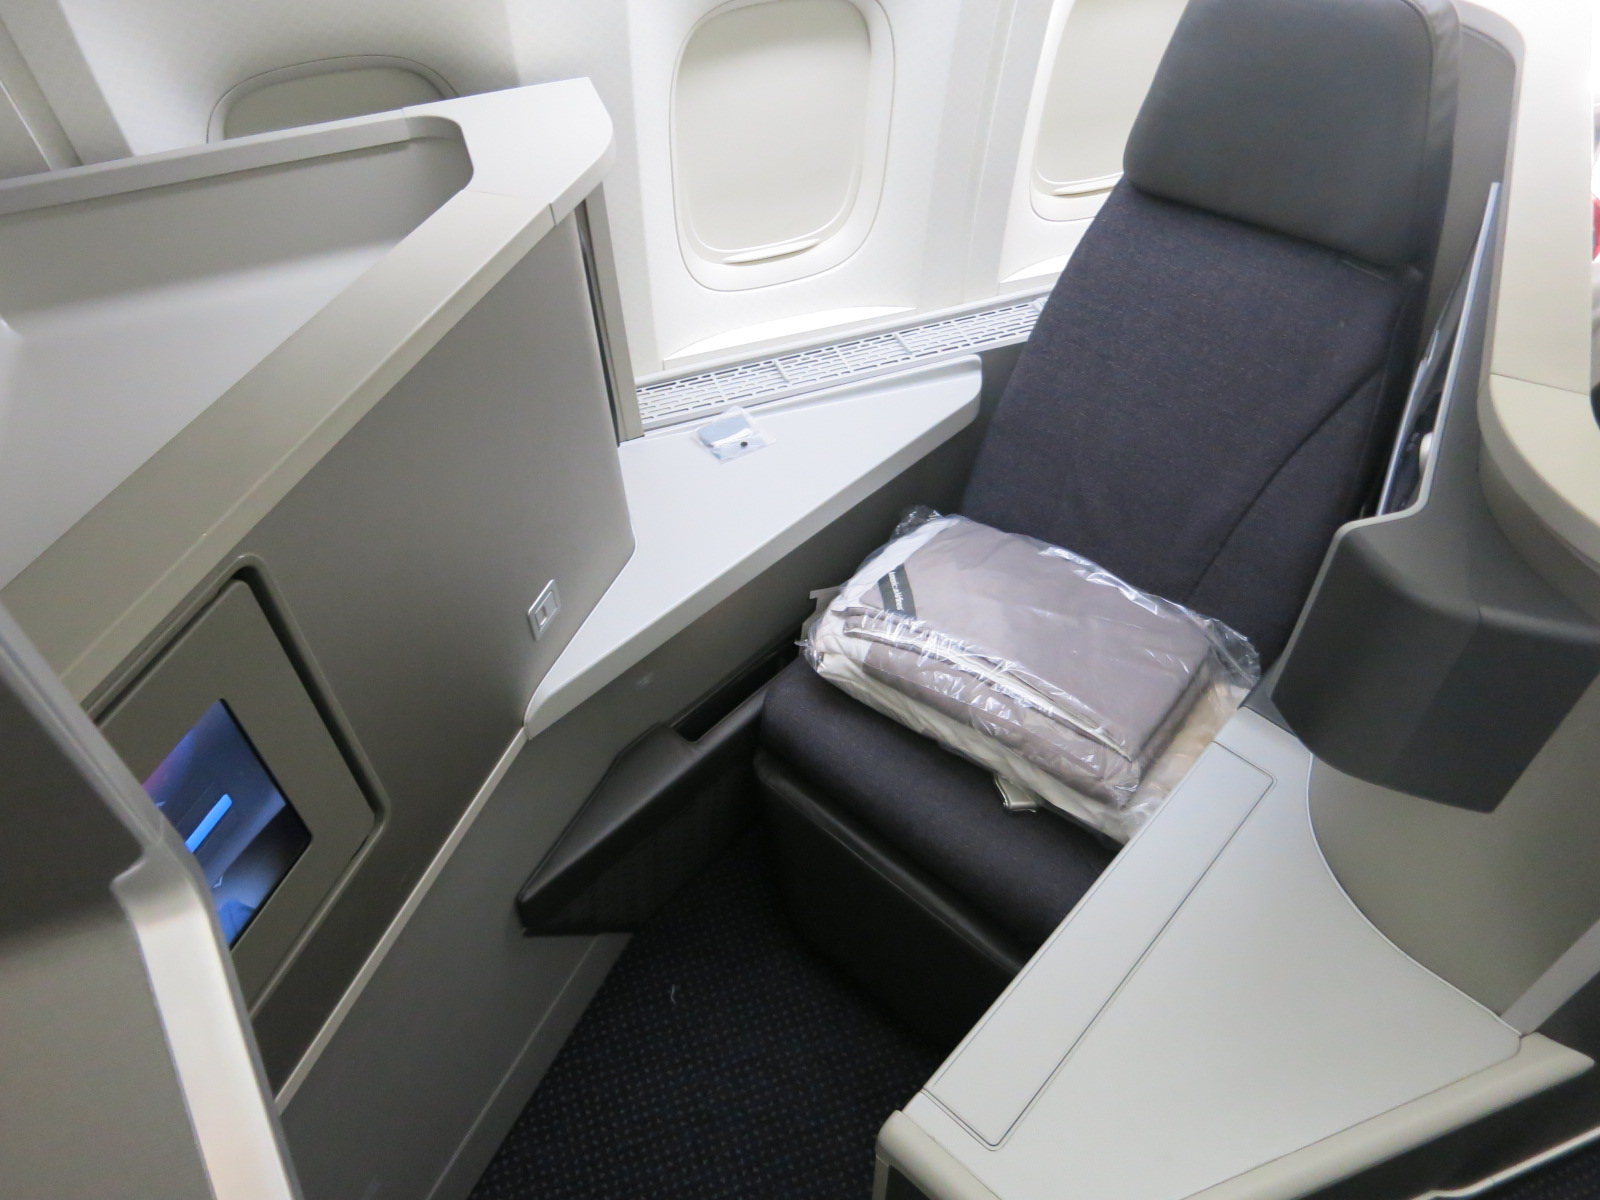 Which Airline Has the World's Best Business Class?